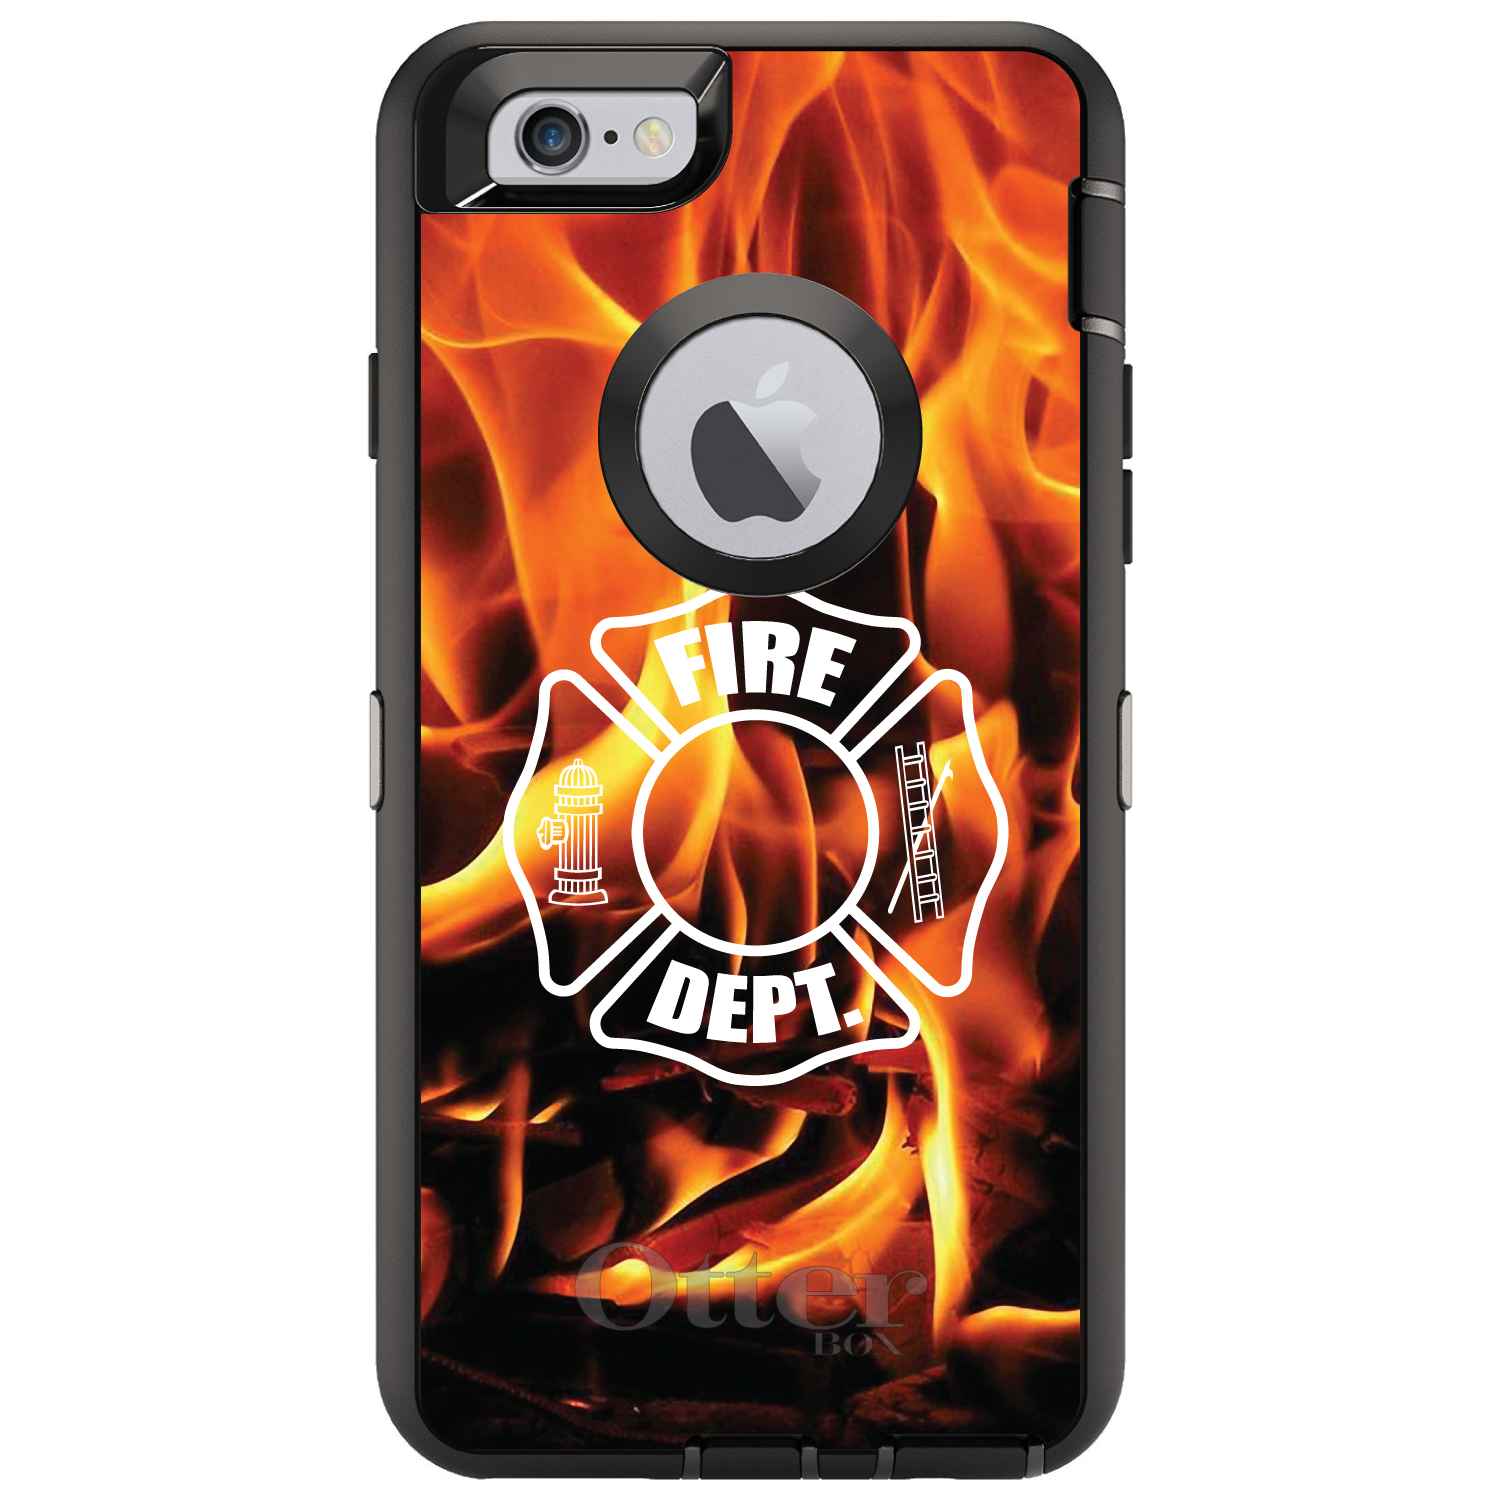 "DistinctInk™ Custom Black OtterBox Defender Series Case for Apple iPhone 6 Plus / 6S Plus (5.5"" Screen) - Flames Fire Department"